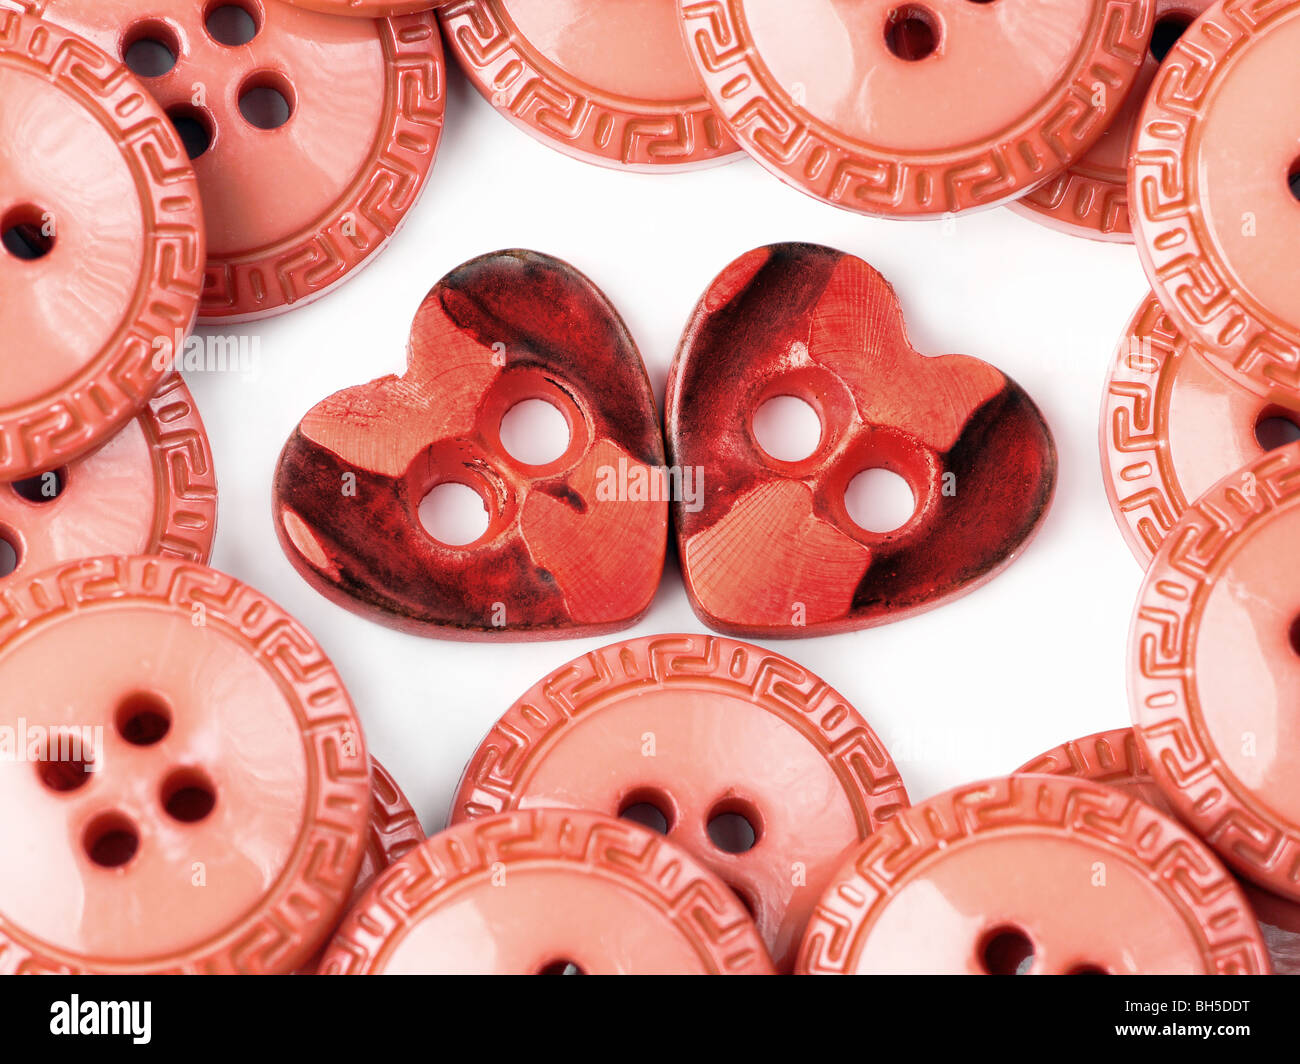 Two heart-shaped buttons surrounded by round buttons - Stock Image